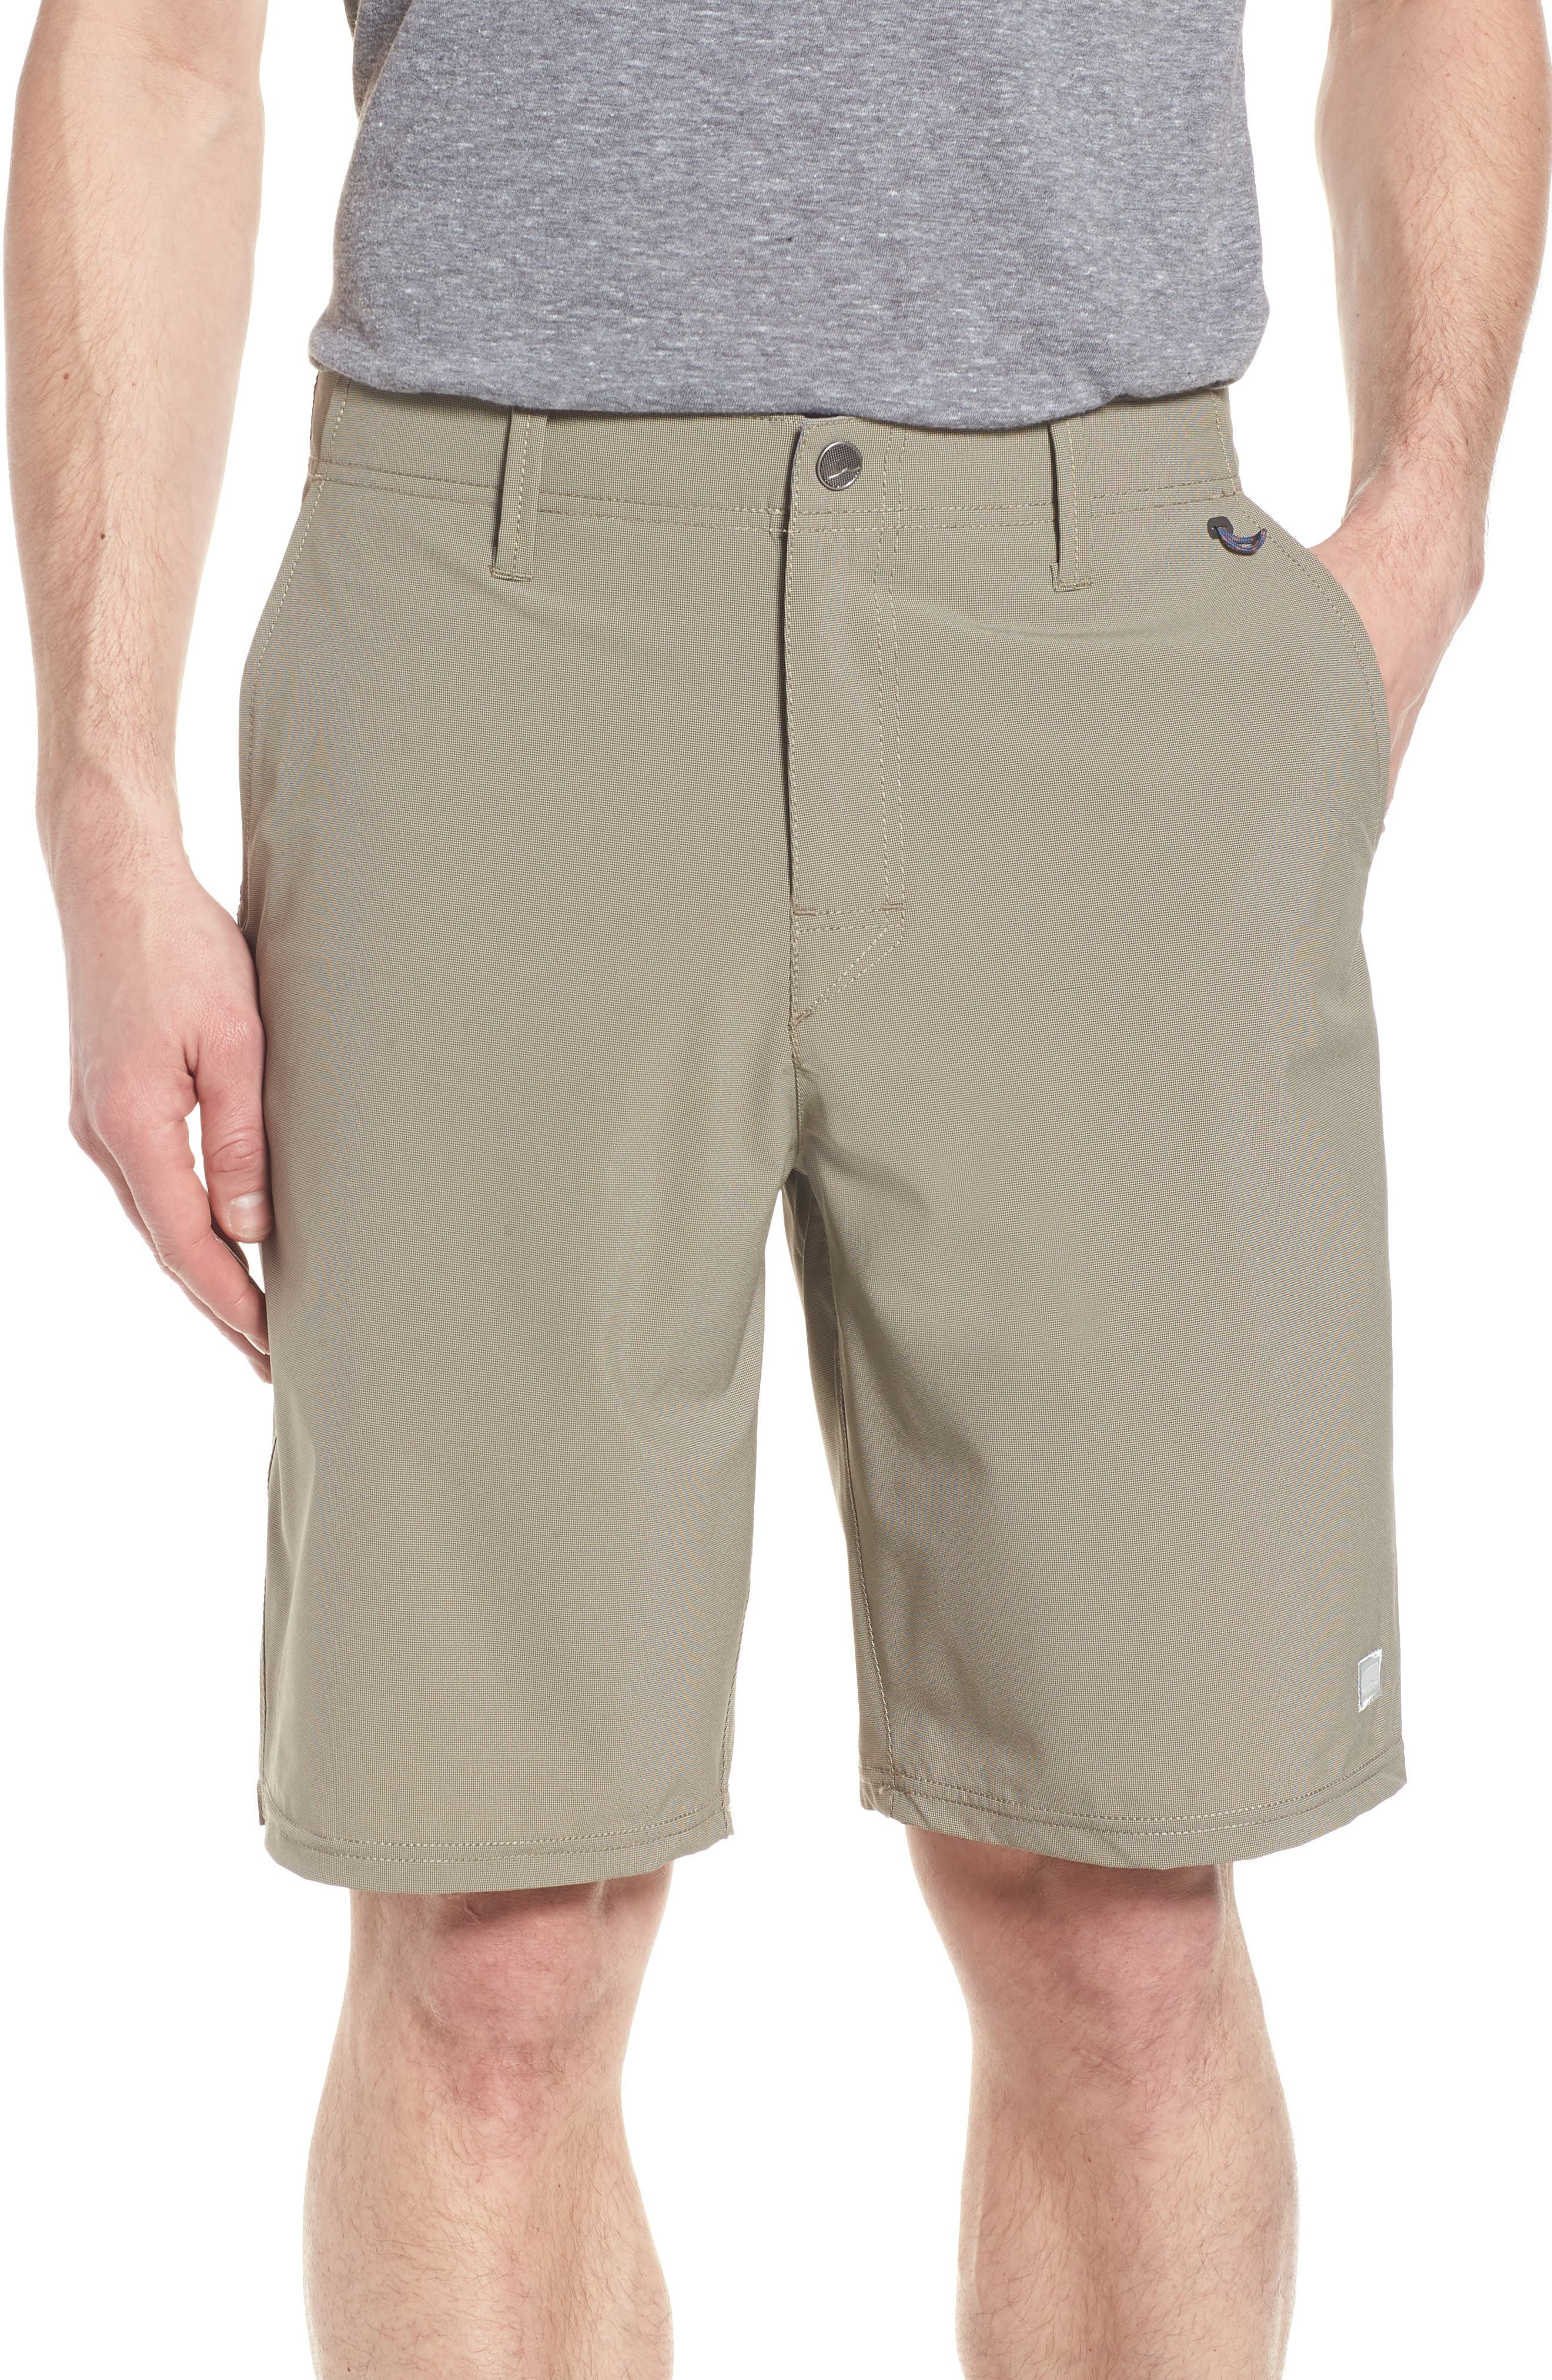 Seaside Hybrid Shorts,                             Main thumbnail 1, color,                             Espresso